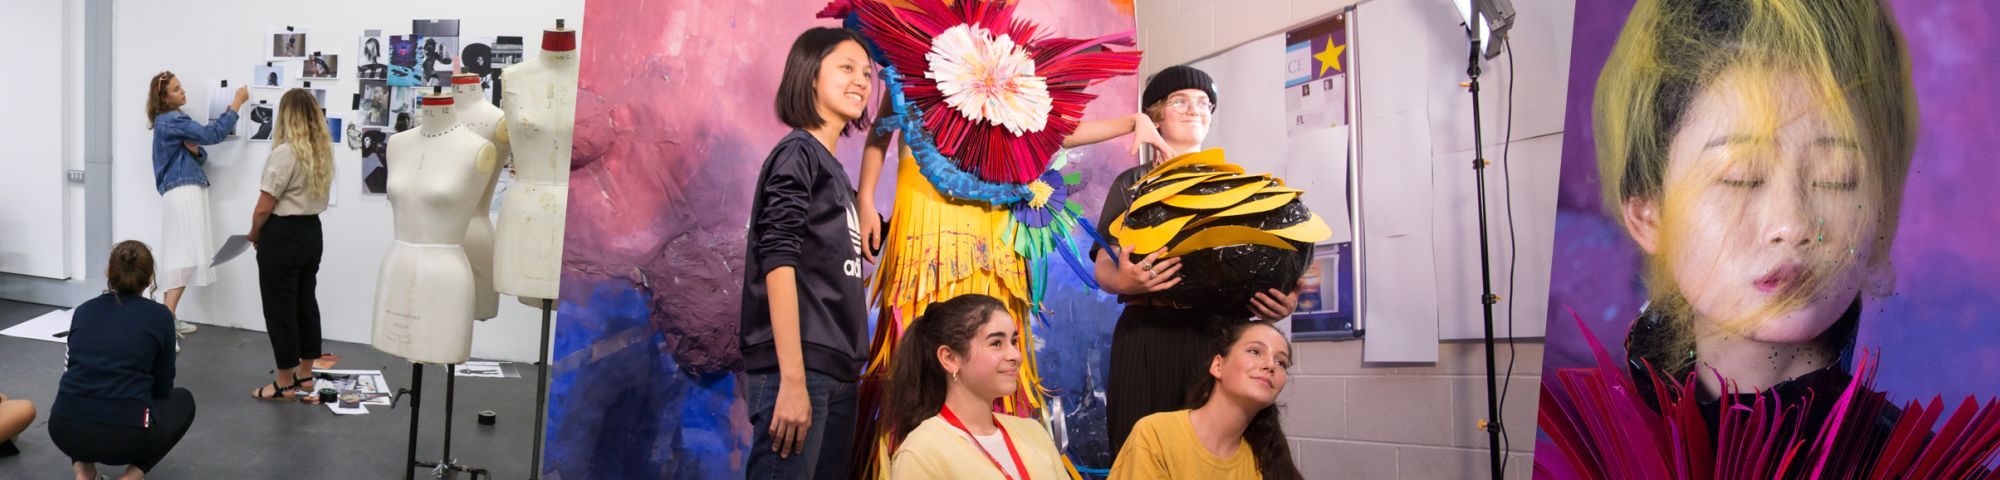 Fashion Design And Styling Residential Summer School For 13 To 16 Year Olds Ual